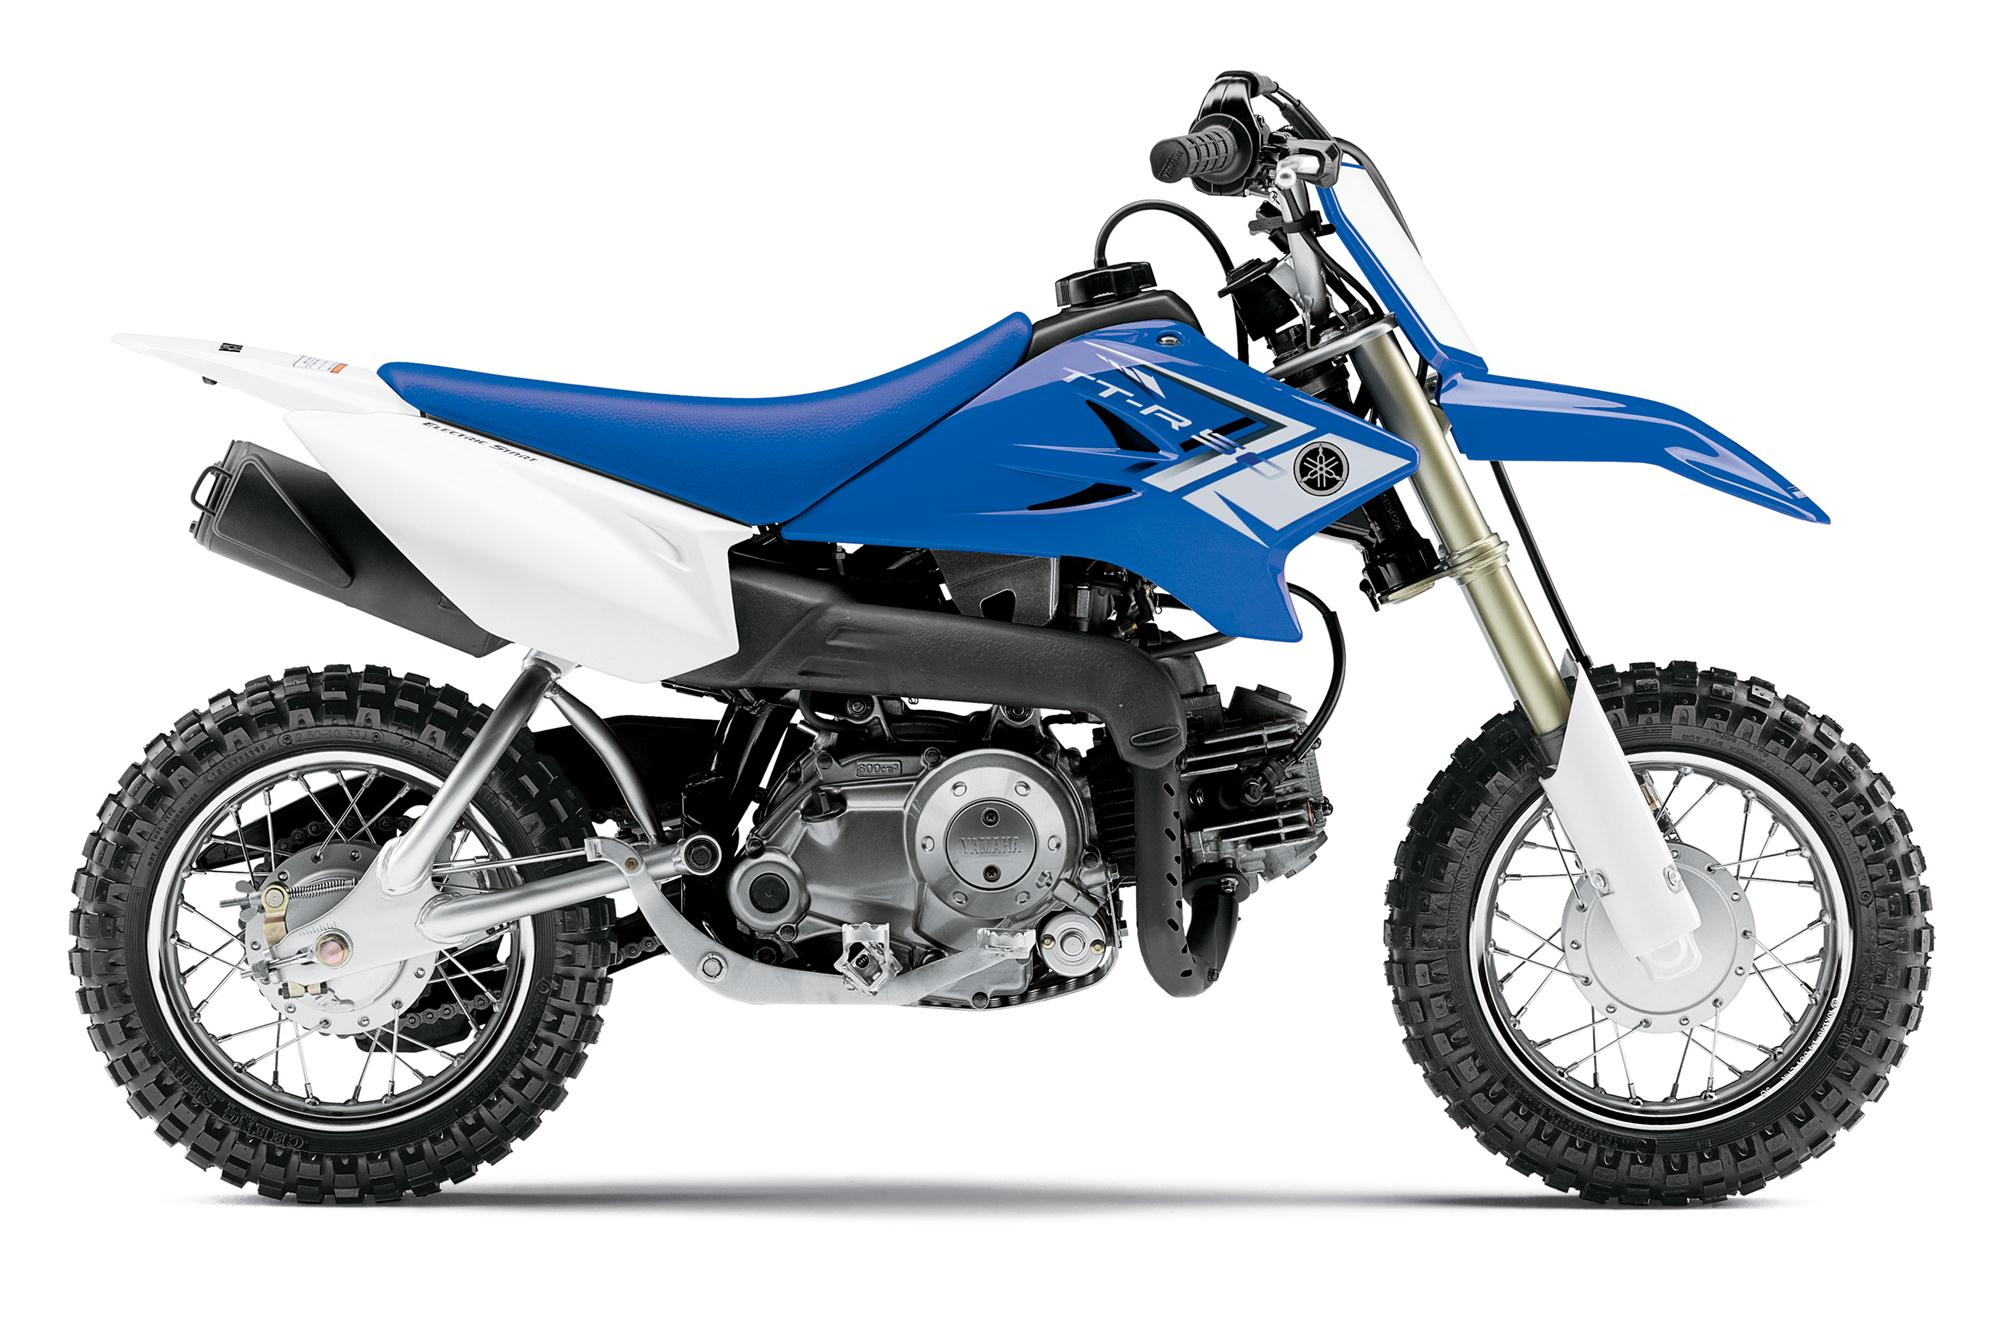 yamaha dirt bikes images - photo #11